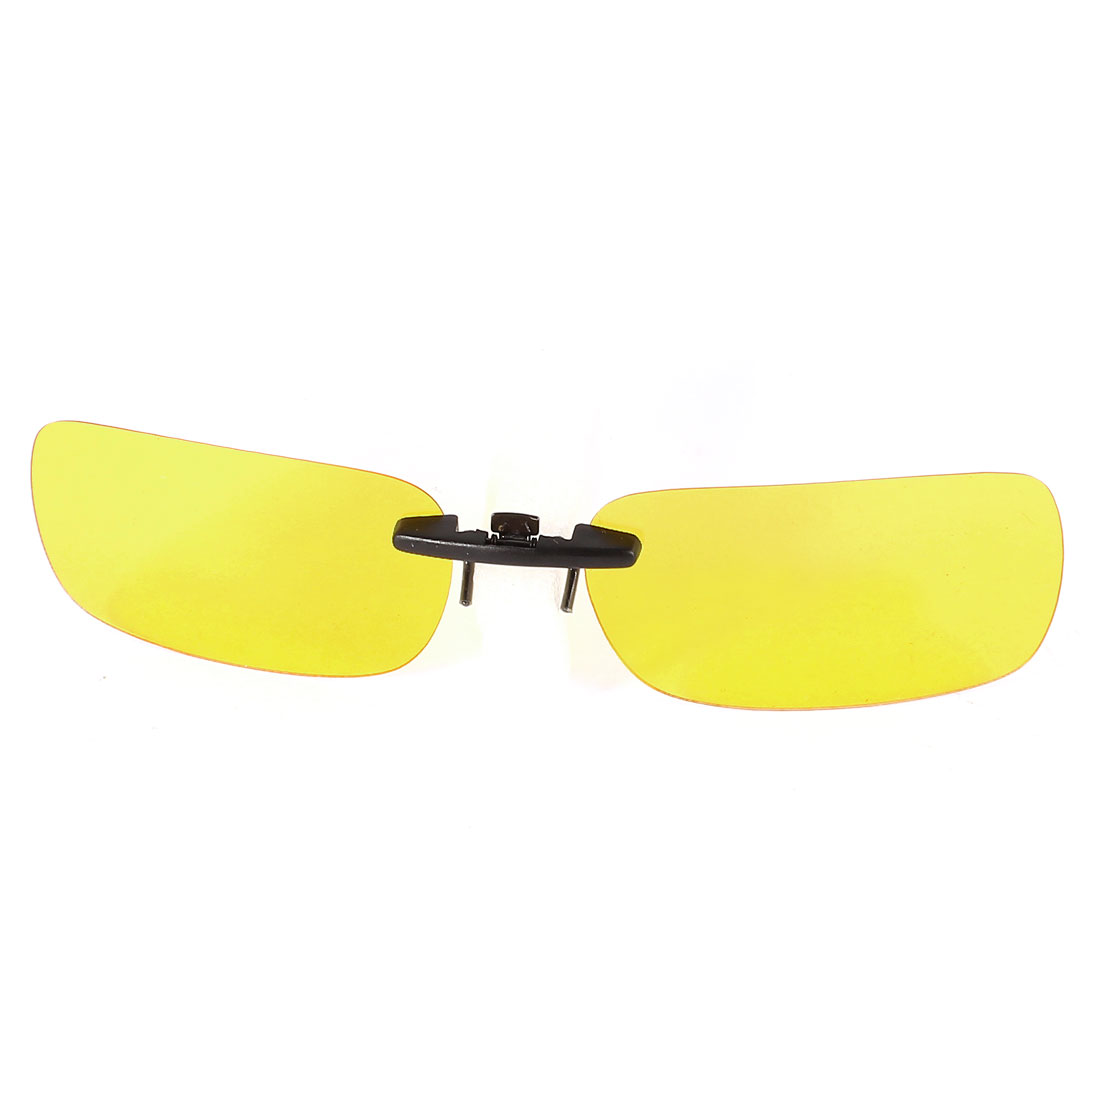 Outdoor Sports Unisex Clear Lens Rimless Clip on Polarized Sunglasses w Case Yellow